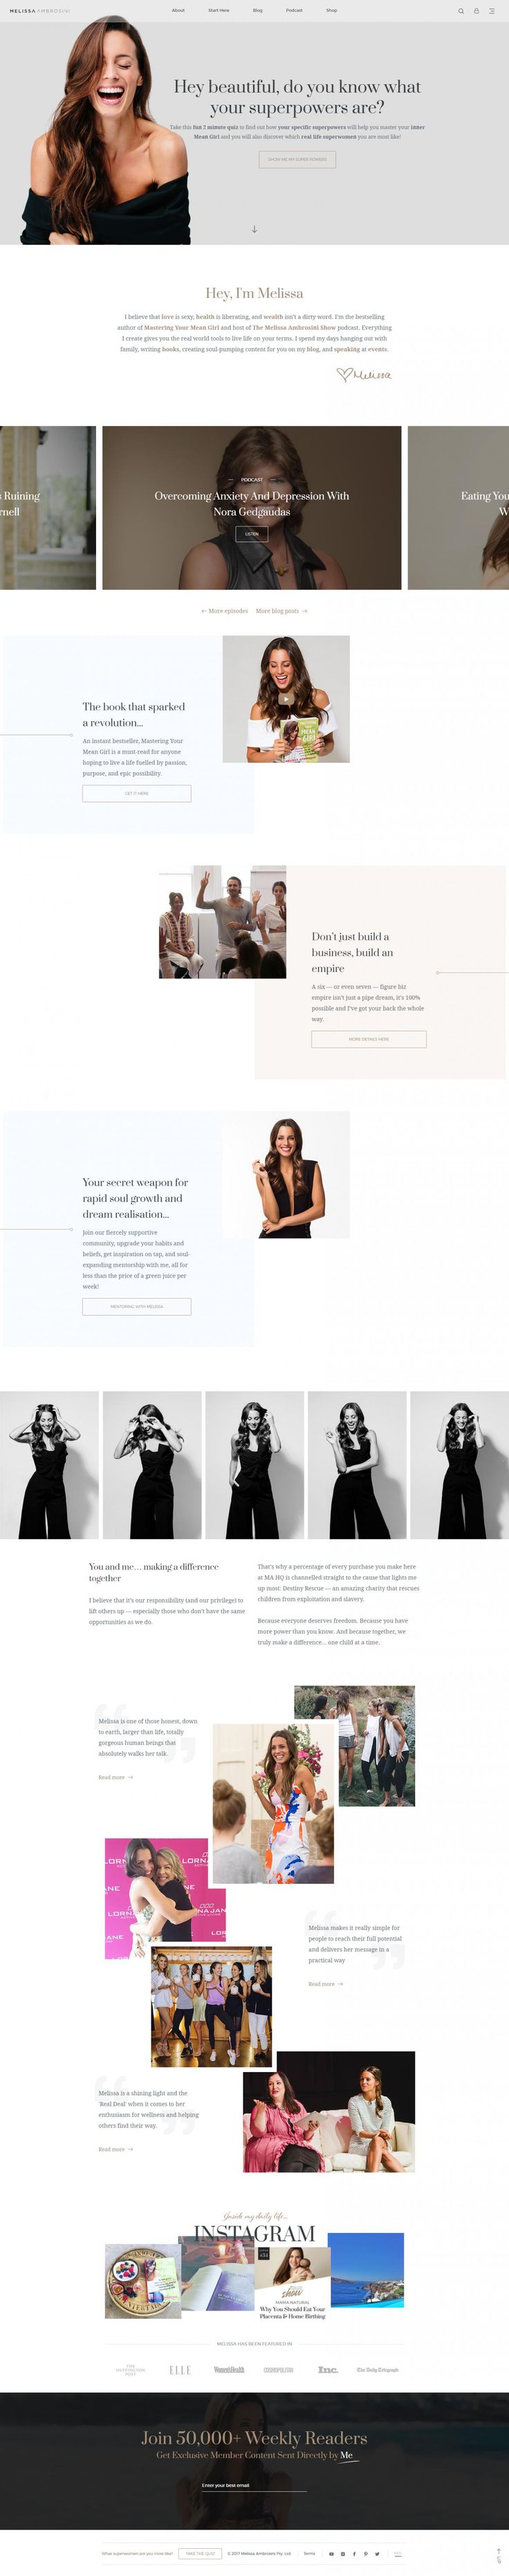 Melissa Ambrosini is the bestselling author of Mastering Your Mean Girl, host of The Melissa Ambrosini Show podcast and a sought-after motivational speaker. Love the immediate emphasis on the phrase: Hey beautiful, do you know what your superpowers are?